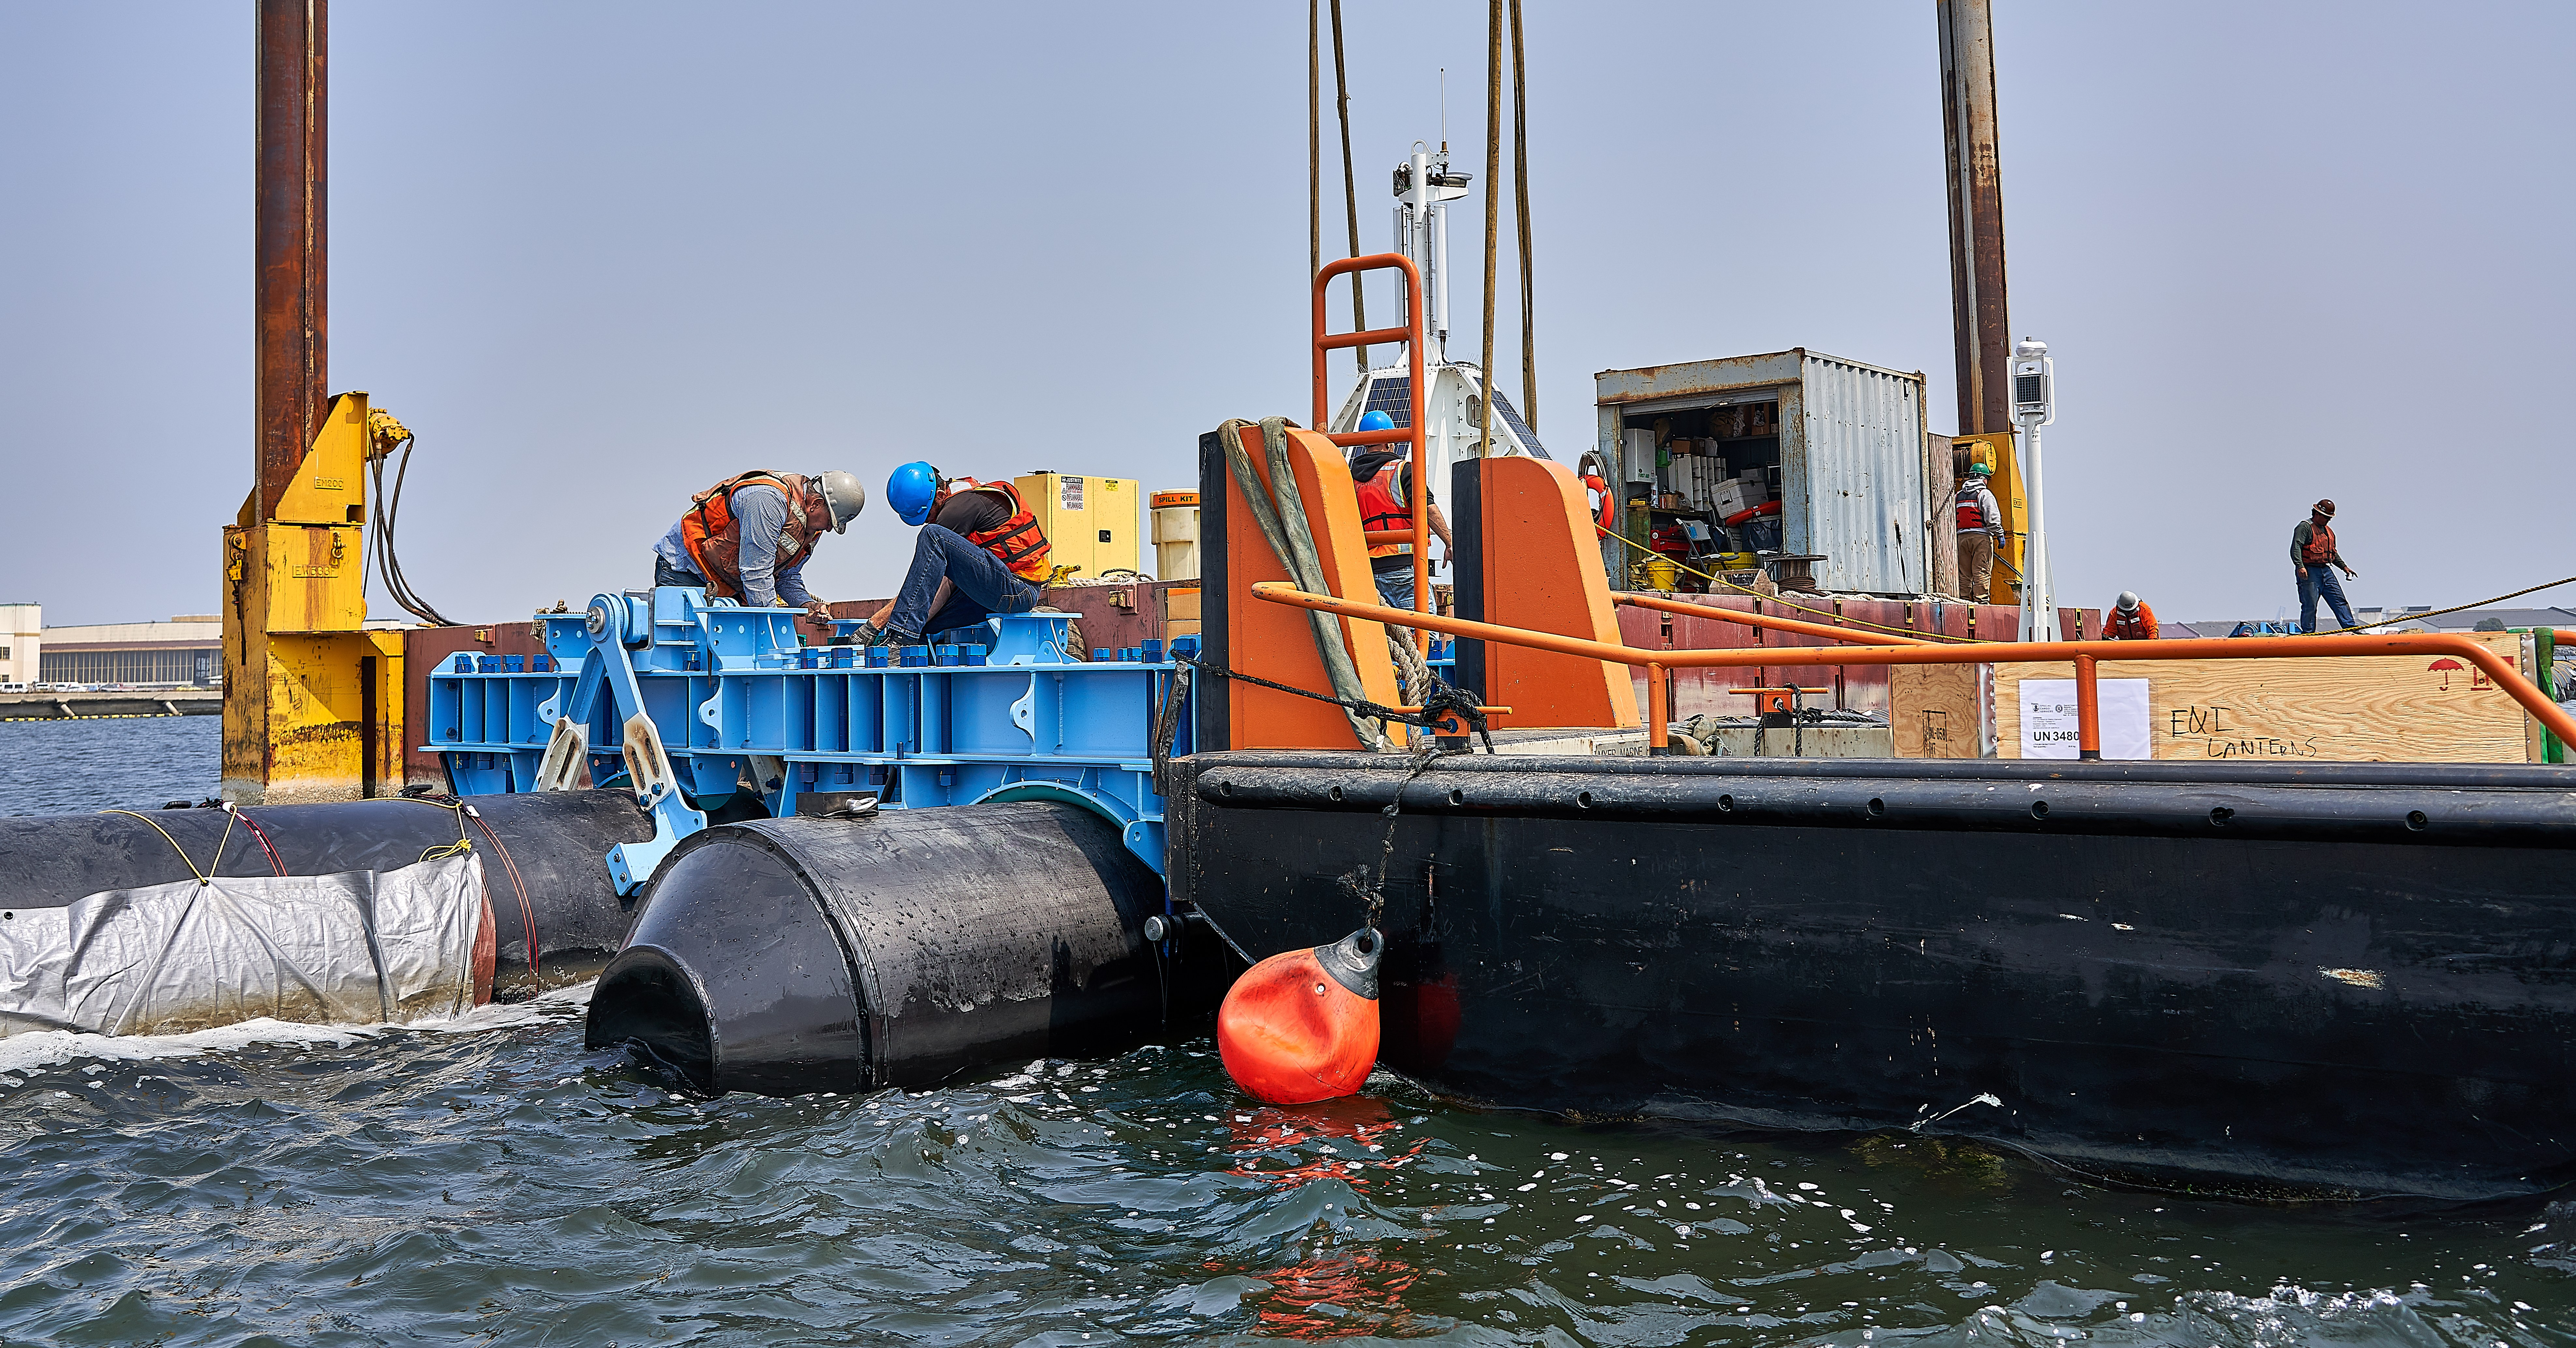 A 600-Meter-Long Plastic Catcher Heads to Sea, but Scientists Are Skeptical